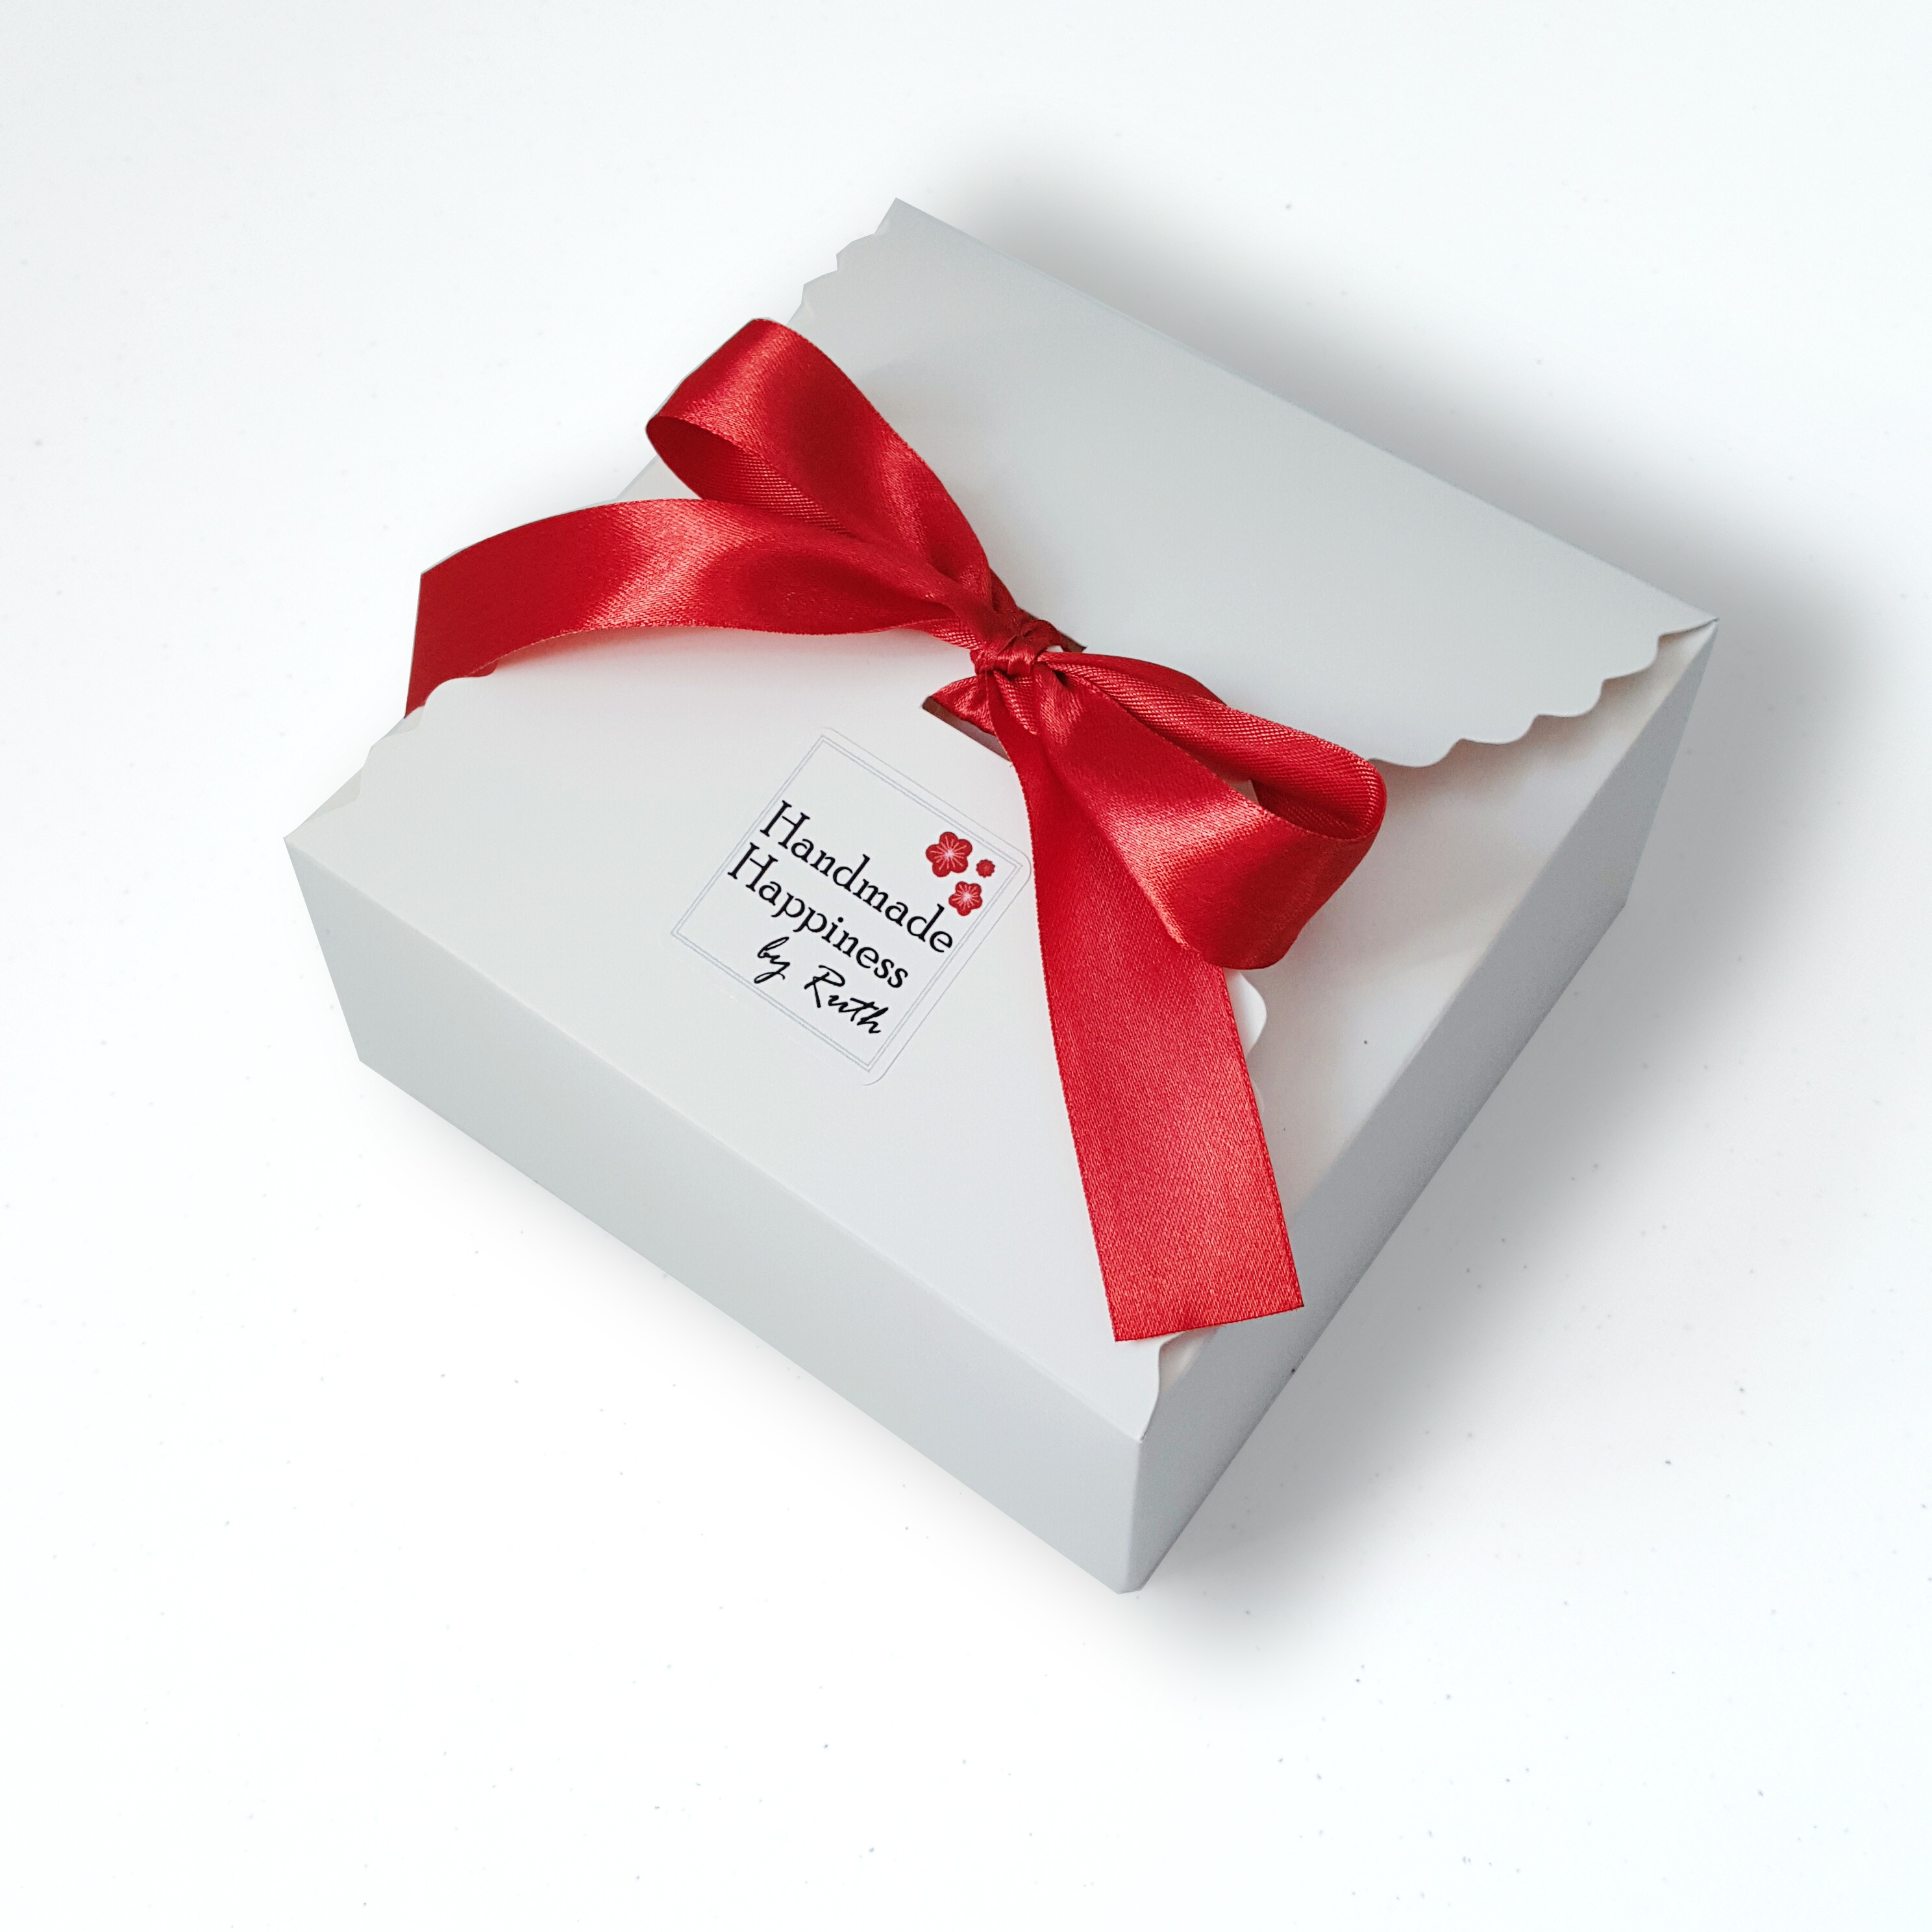 Travel toys come in a white box with red ribbon